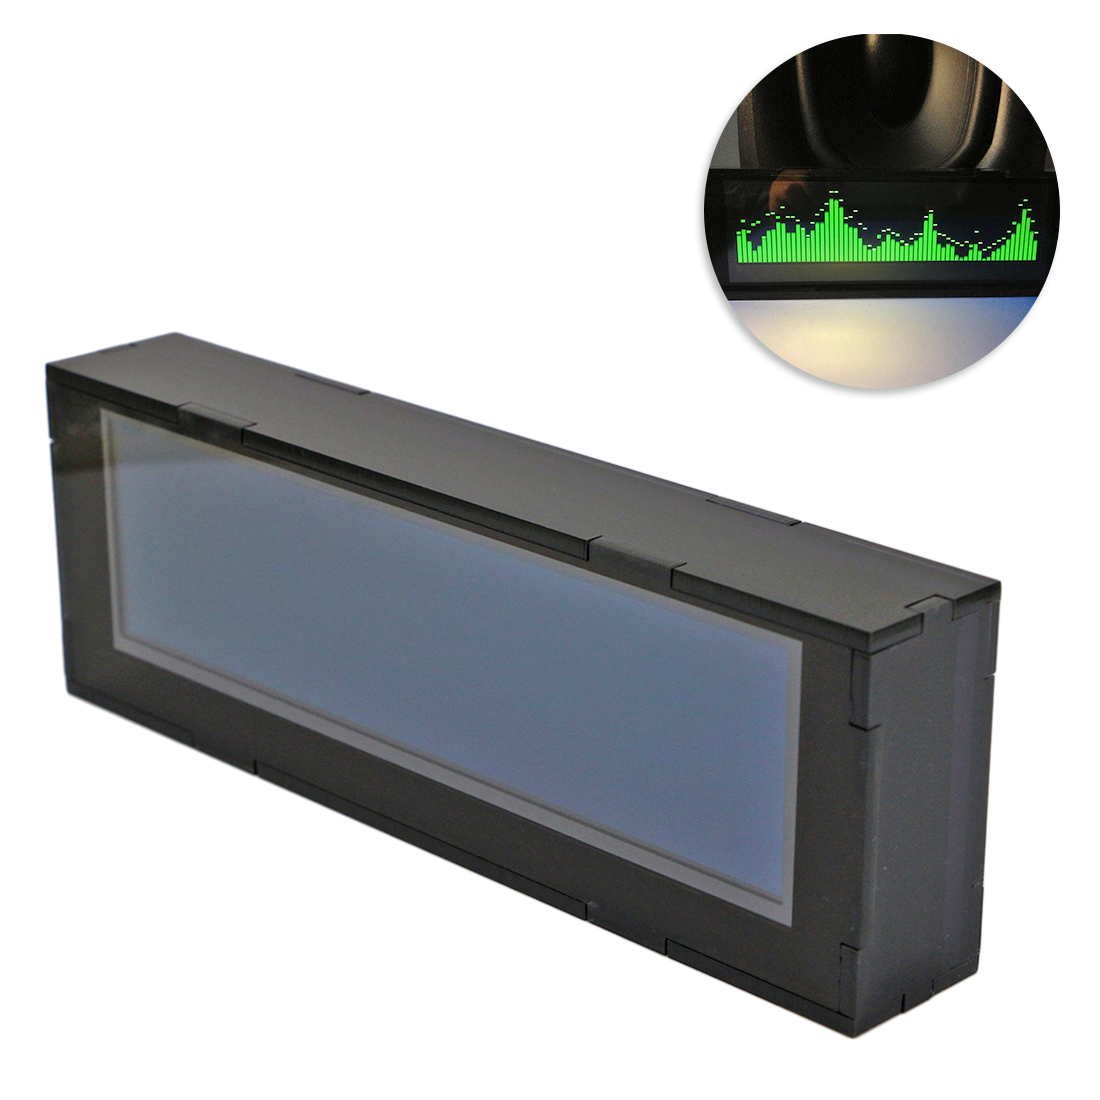 5.5 Inches AS256 Professional Music Spectrum Display Car Amplifier Audio Modification OLED Level Balance Indicator-Green Display